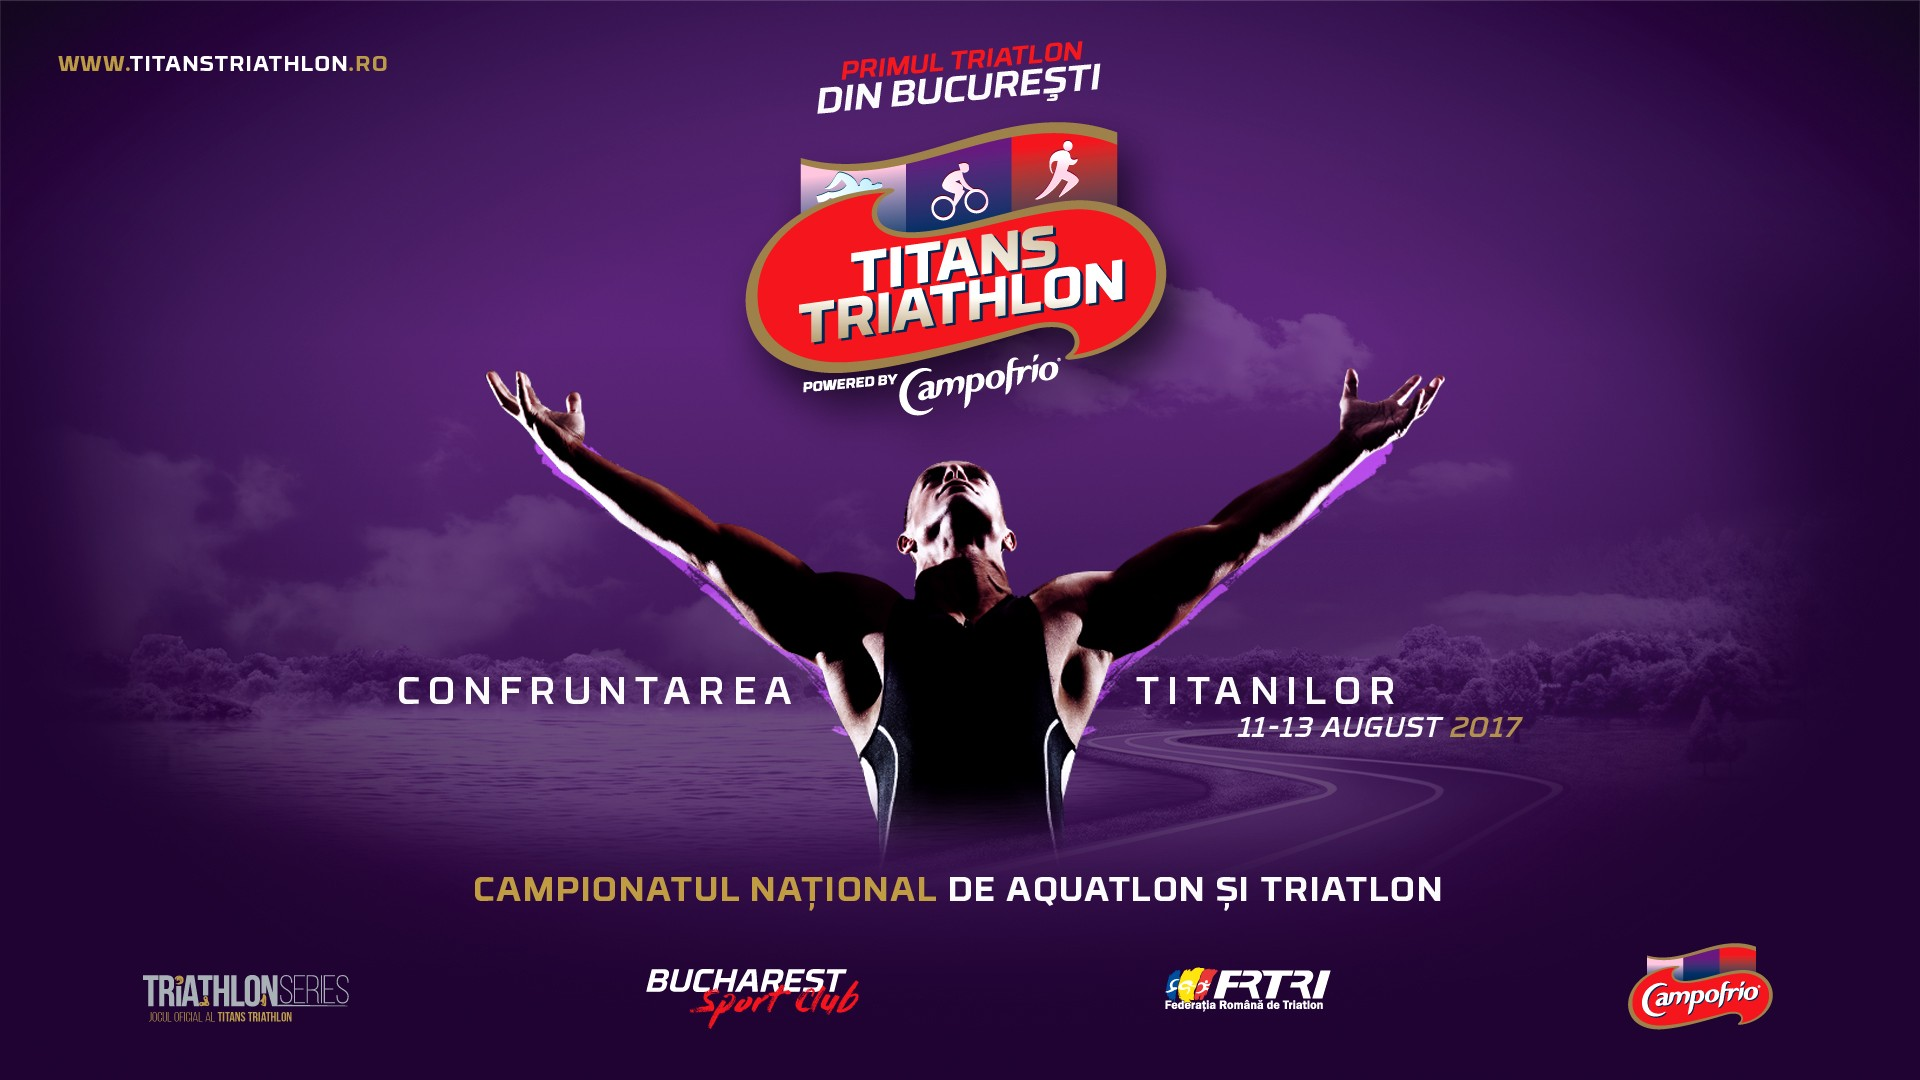 Titans triatlon